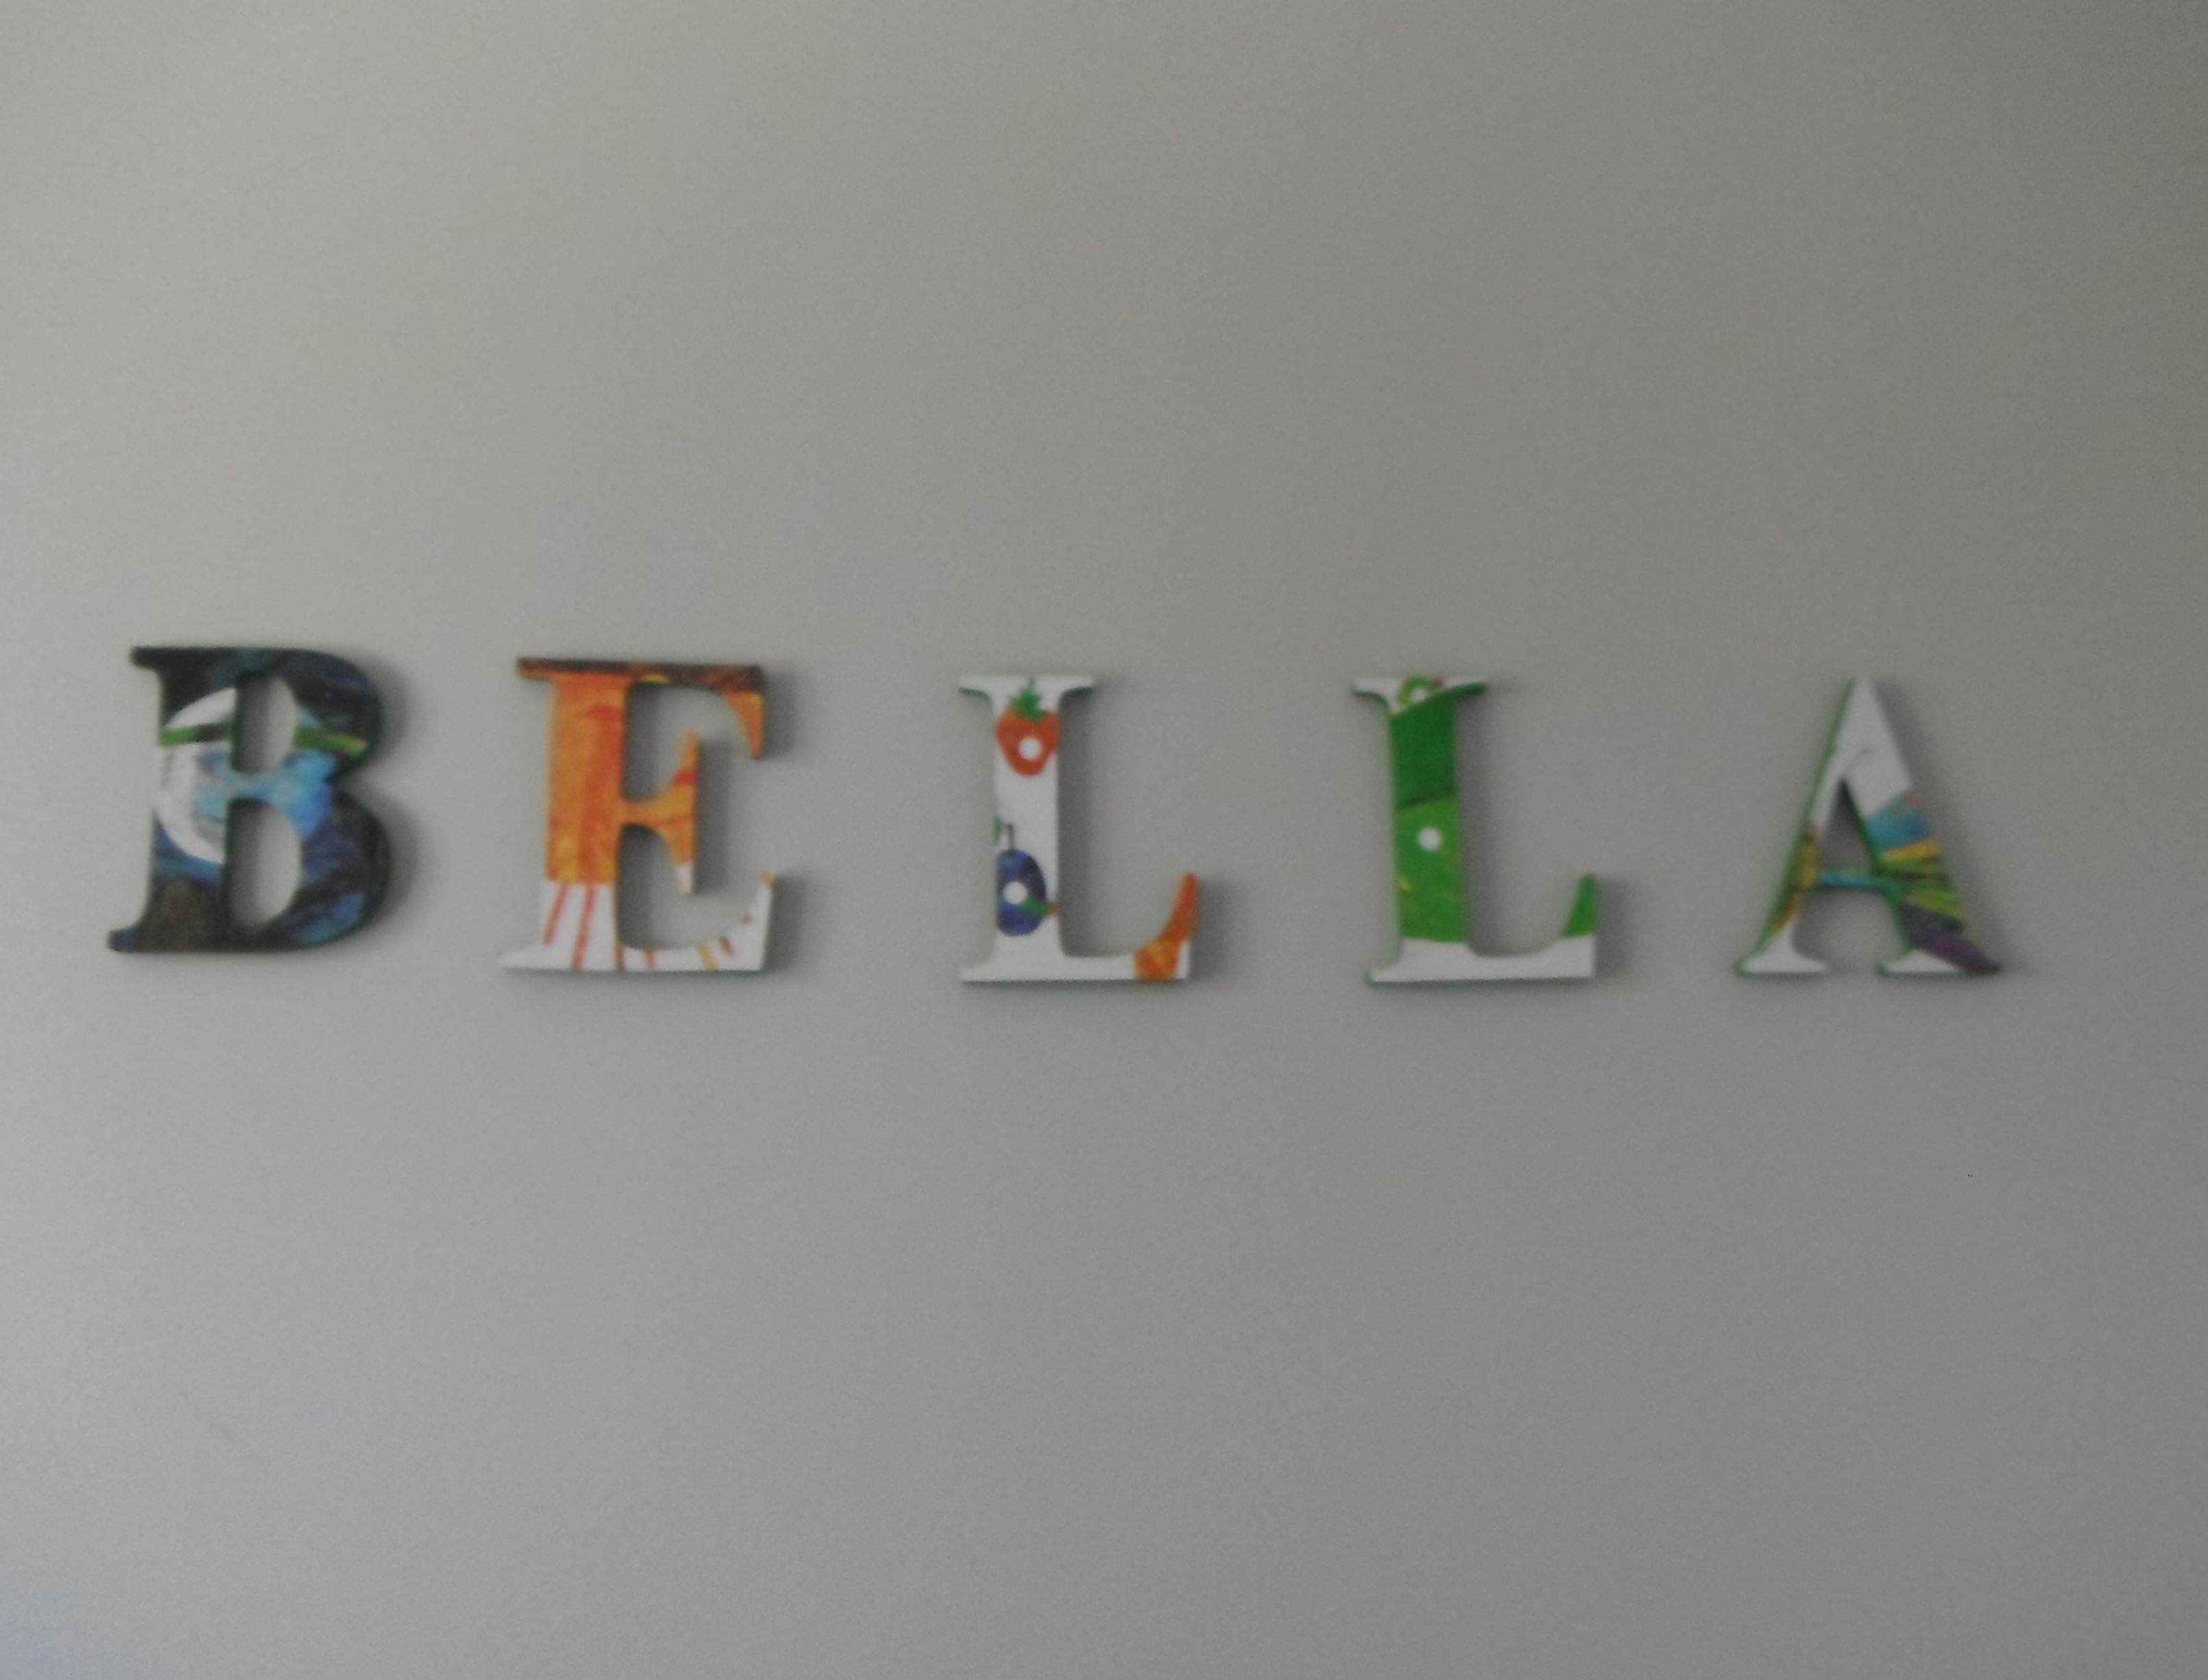 Hungry caterpillar name. I brought a second hand hungry caterpillar paper book and some wooden letters. I choose the pictures I wanted to use and traced the letters onto the picture. I painted the letters first - white on the front and green on the edges. I then cut out the pictures and mod podged them onto the letters.